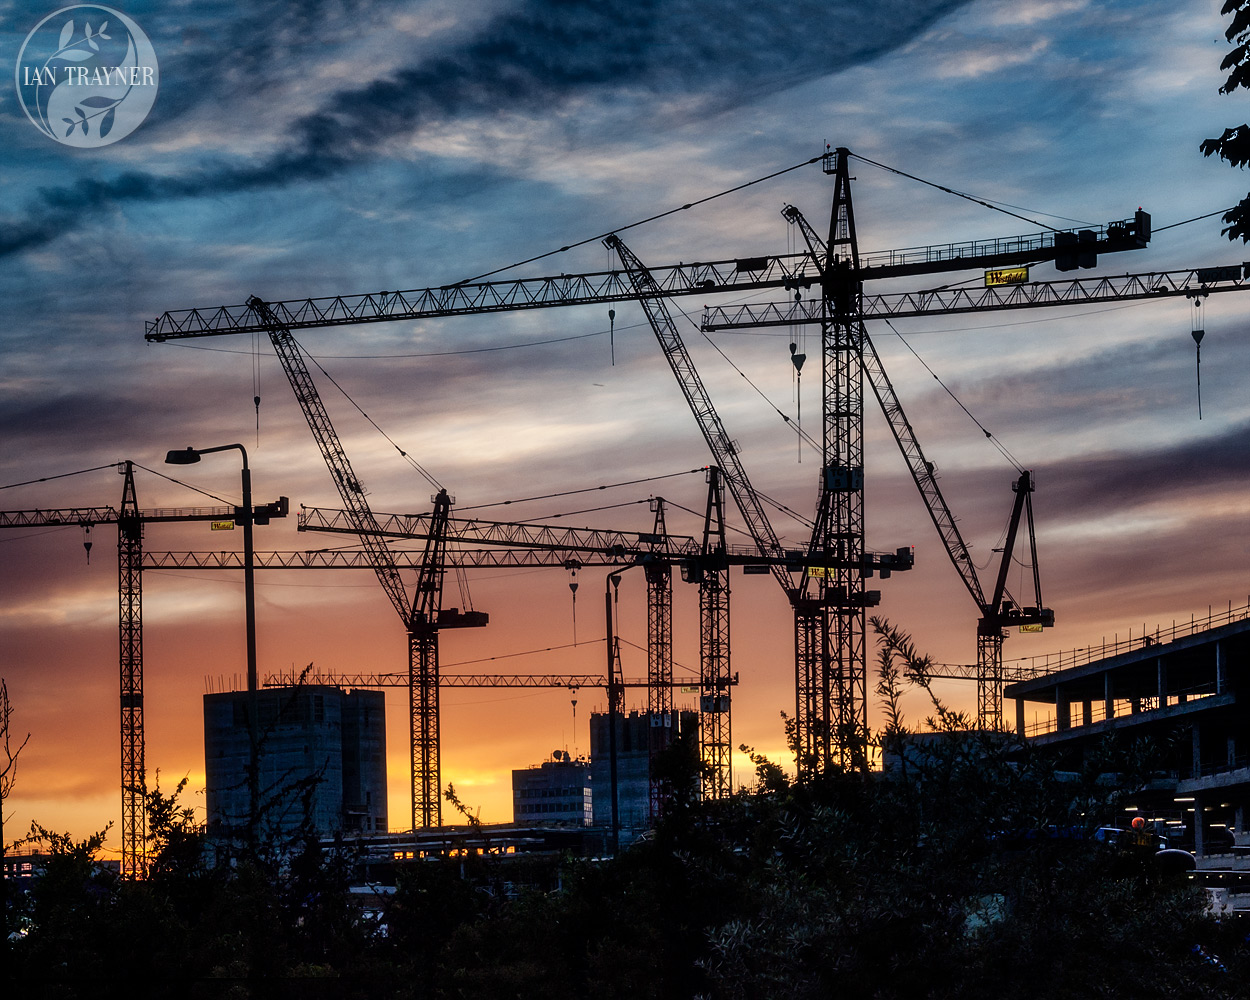 Westfield London during construction. Photo of dramatic sky and sunset, with cranes in silhouette. Photo by Ian Trayner, 2007.